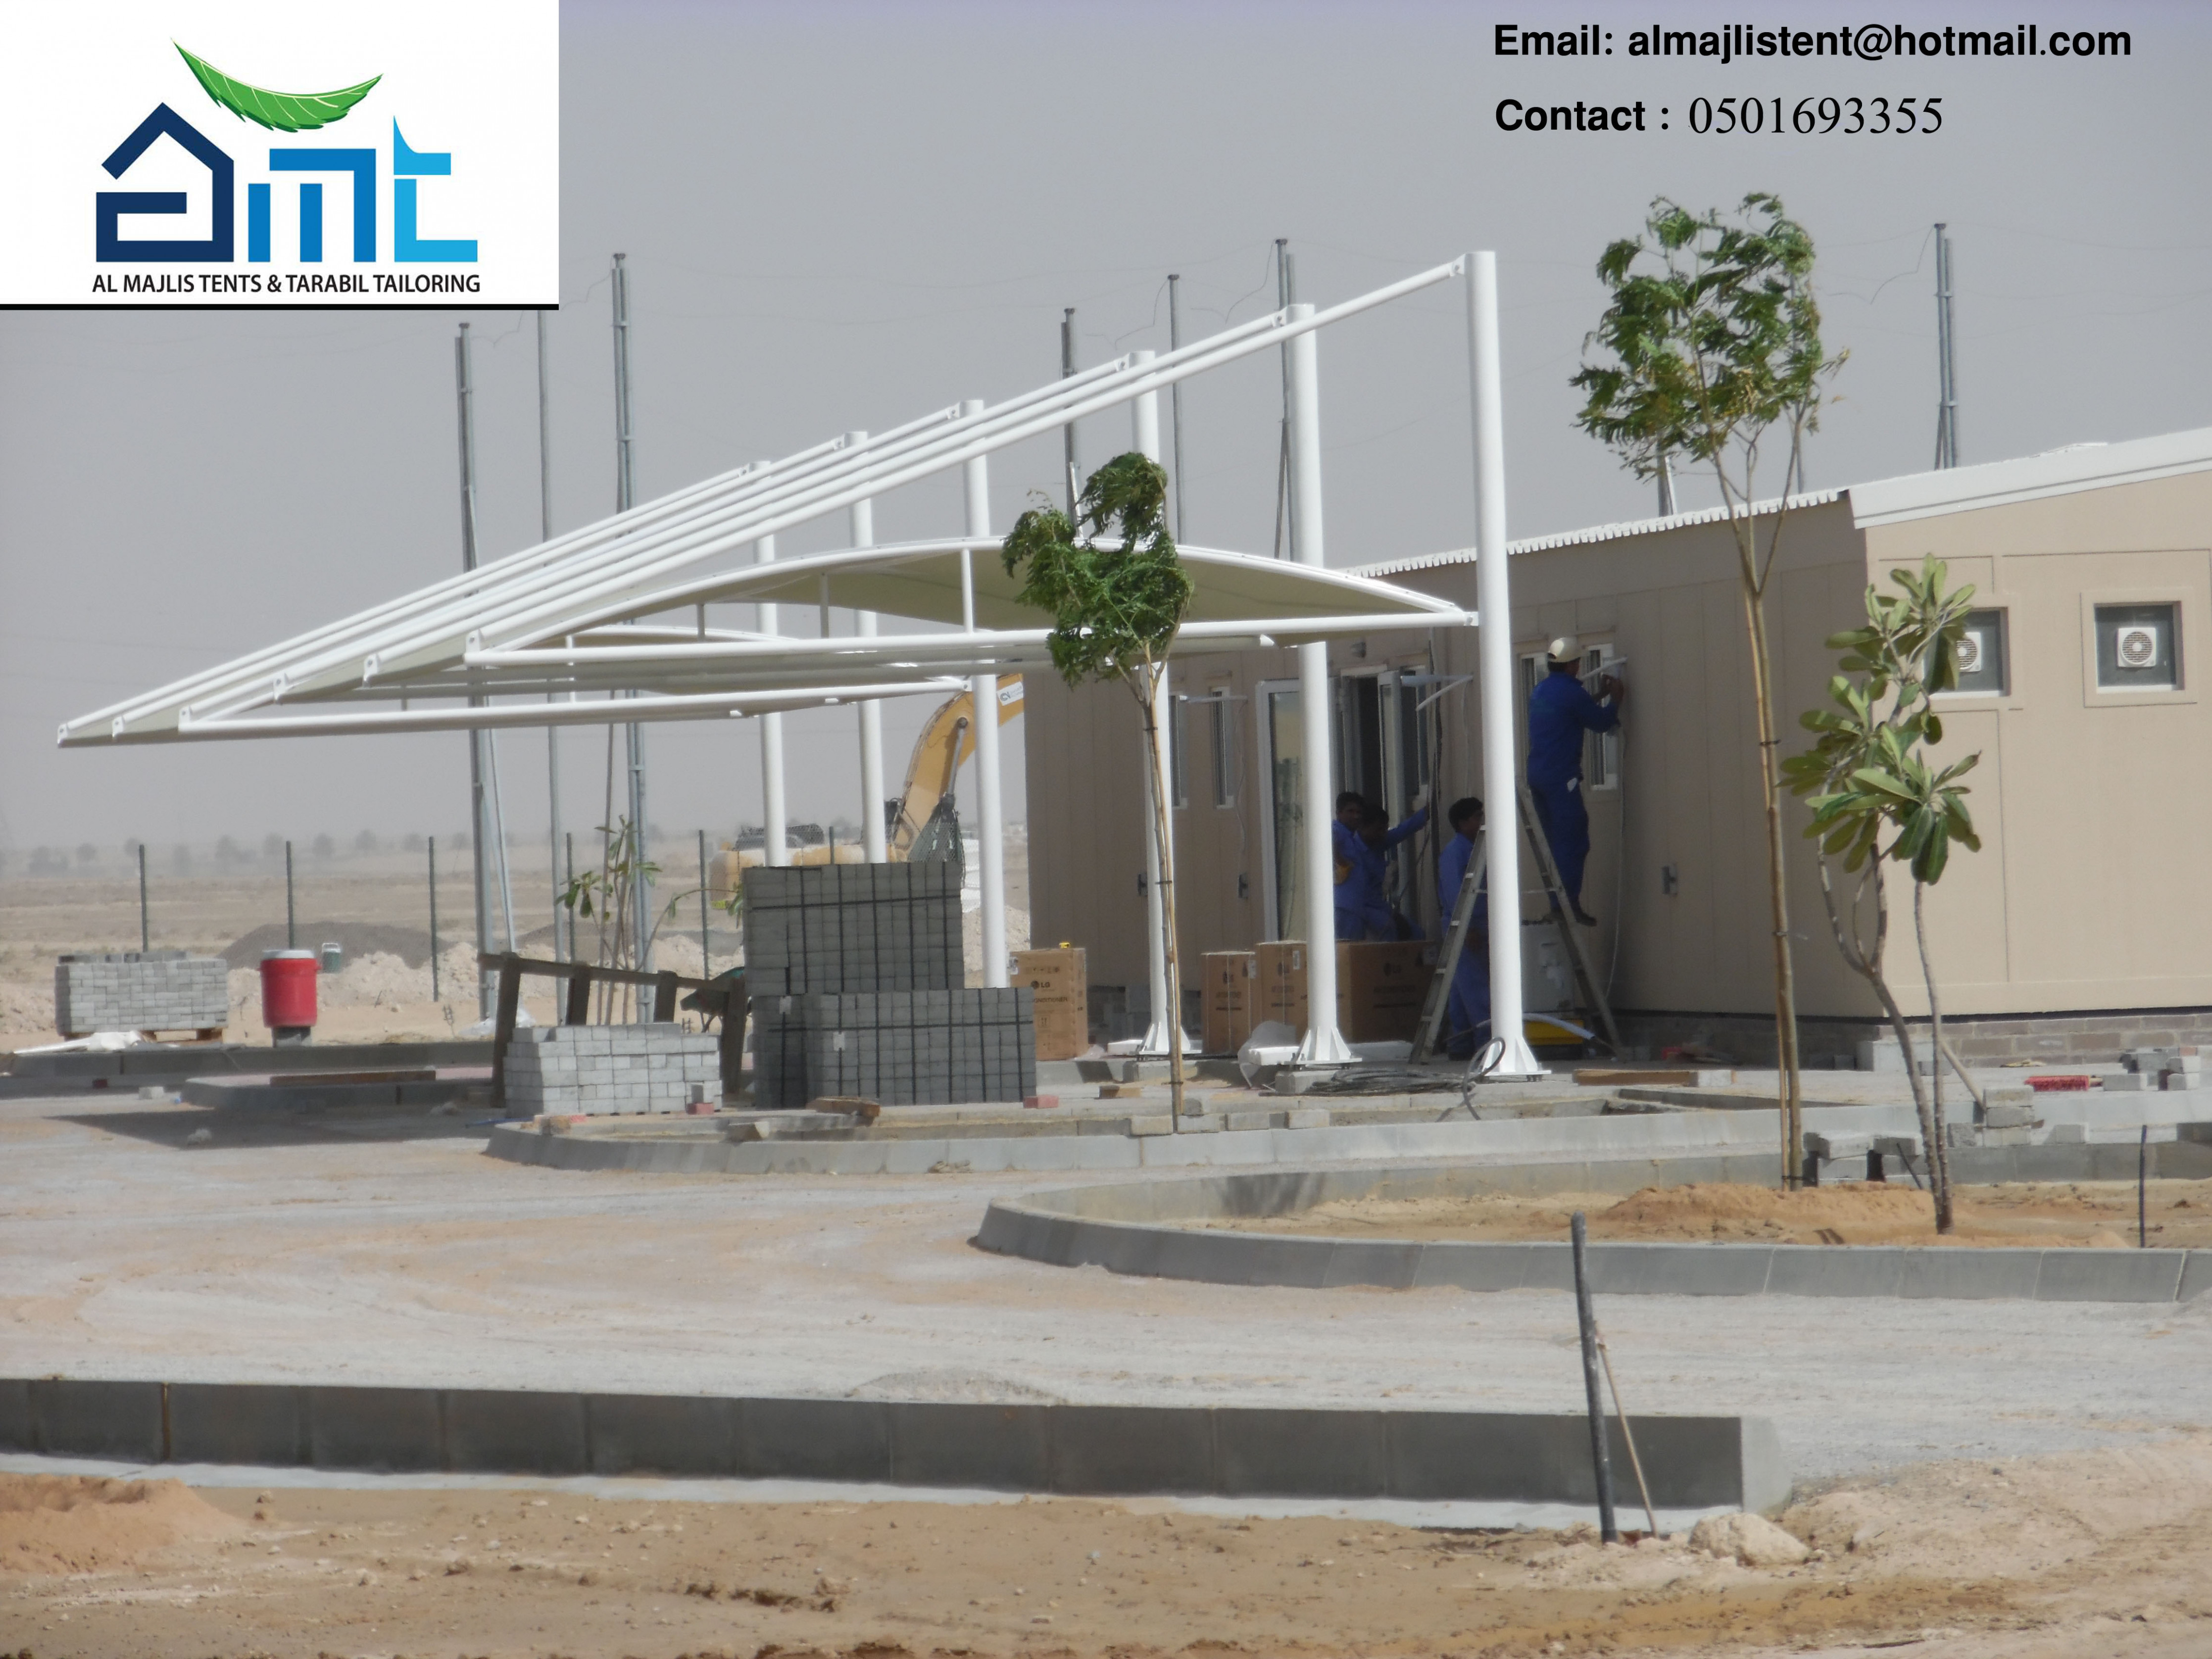 Welcome To Al Majlis Tent Concept|Design|Manufacturers ..